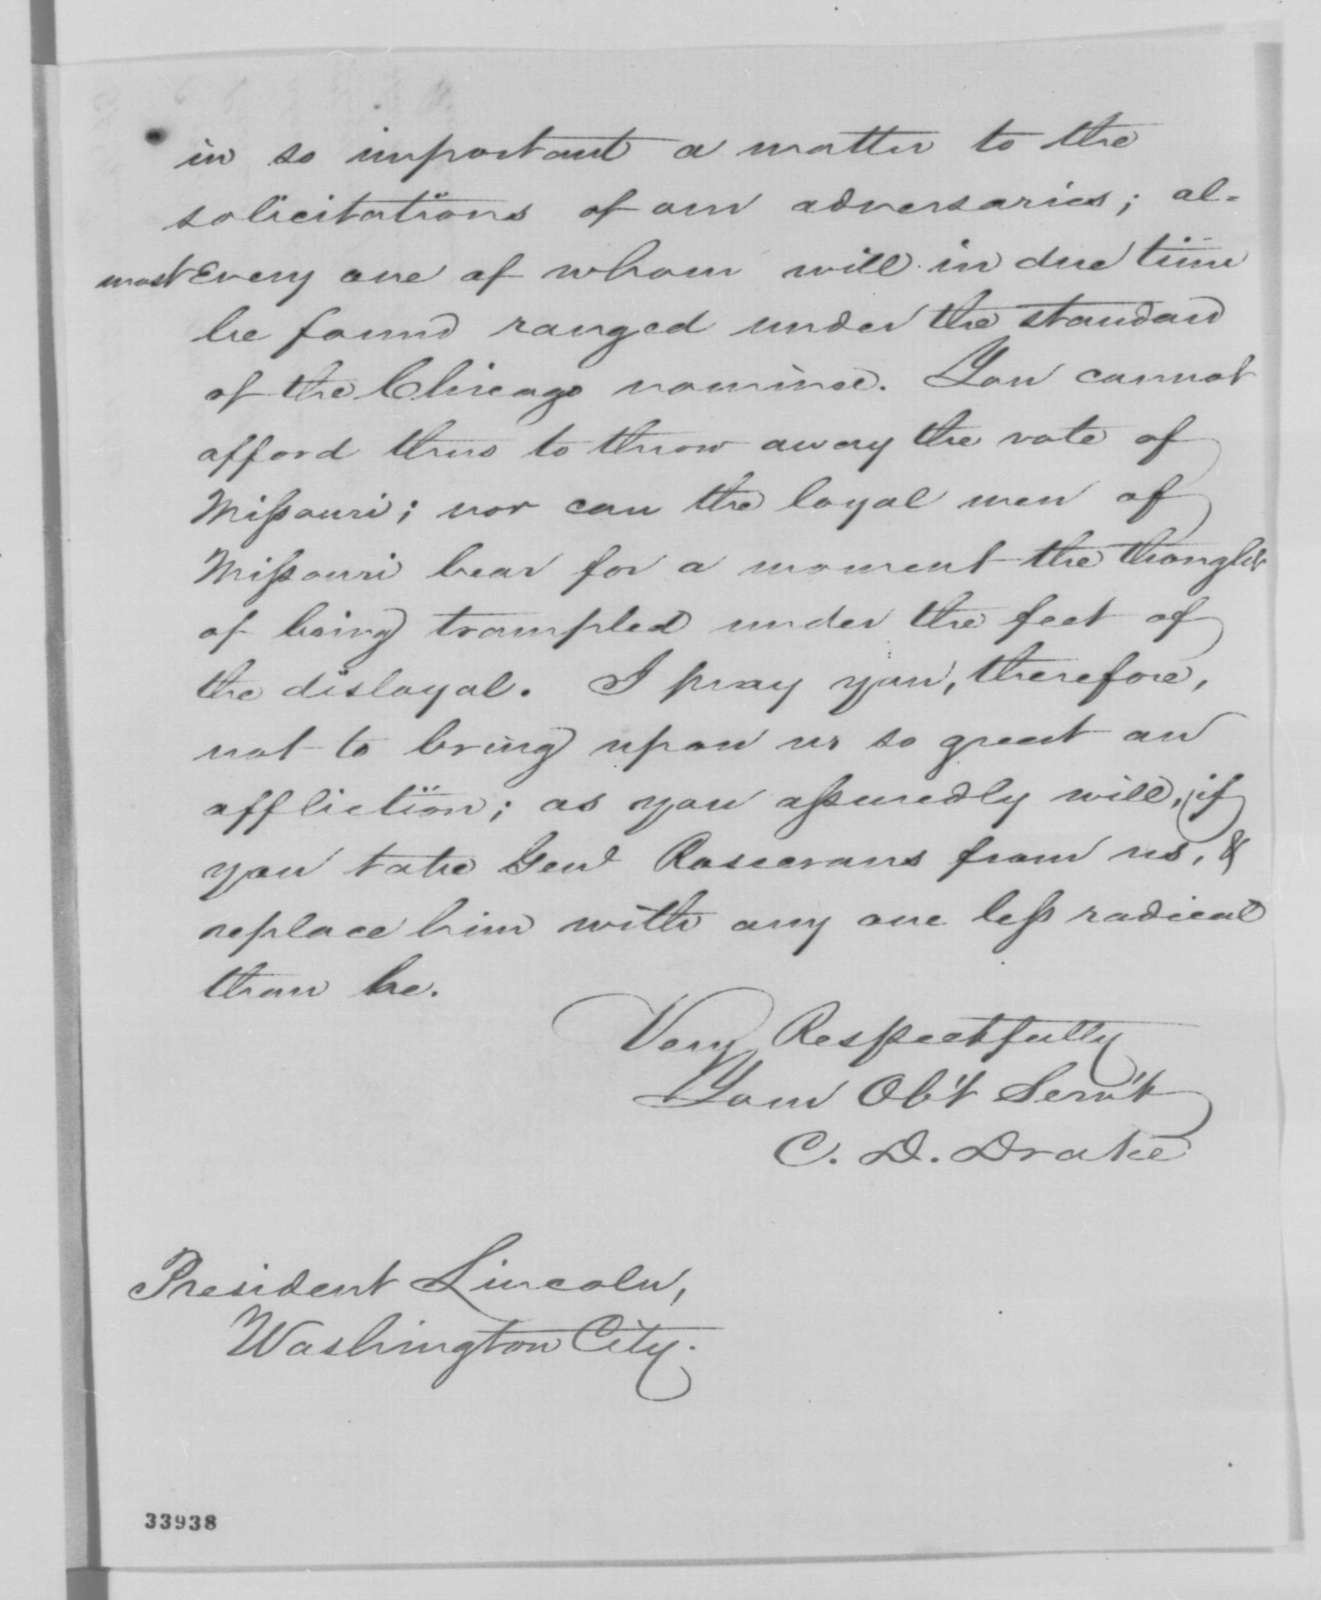 Charles D. Drake to Abraham Lincoln, Wednesday, June 22, 1864  (Military affairs in Missouri)